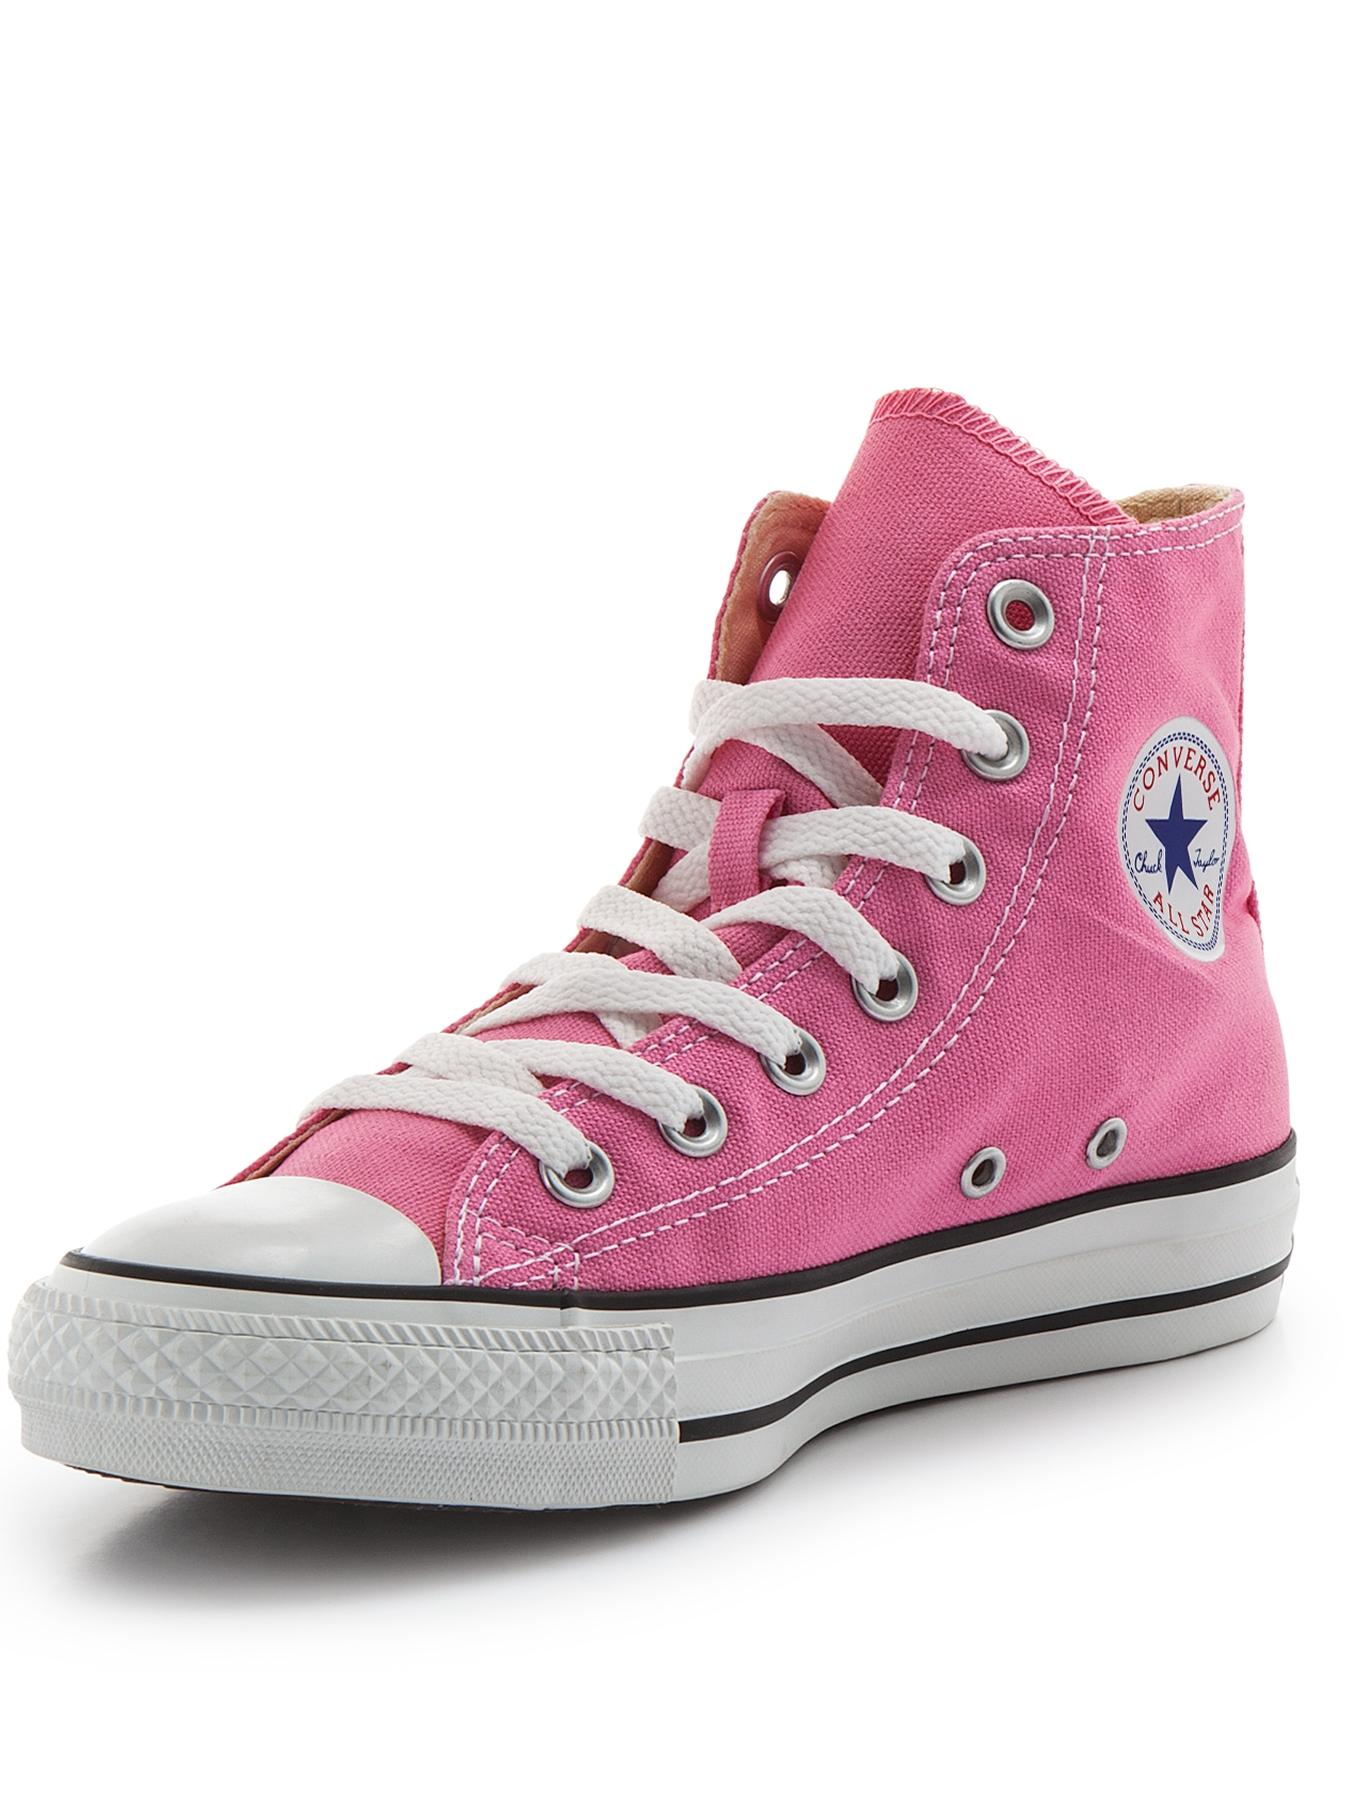 Chuck Taylor All Star Canvas Hi-Top Plimsolls, Pink